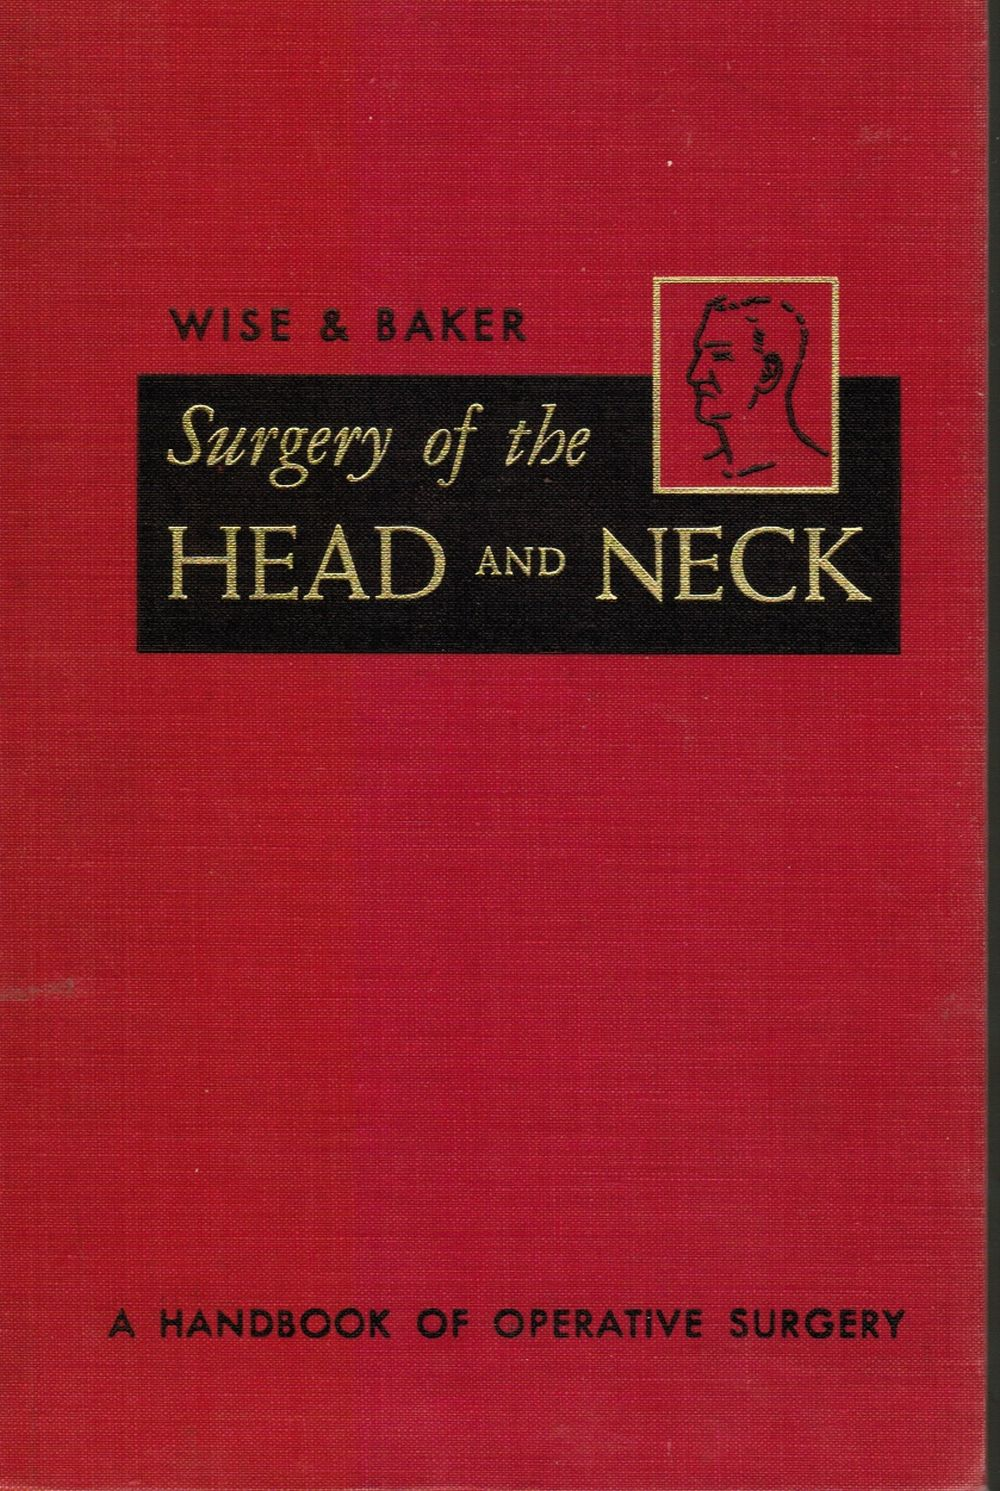 Surgery of the Head and Neck: a Handbook of Operative Surgery